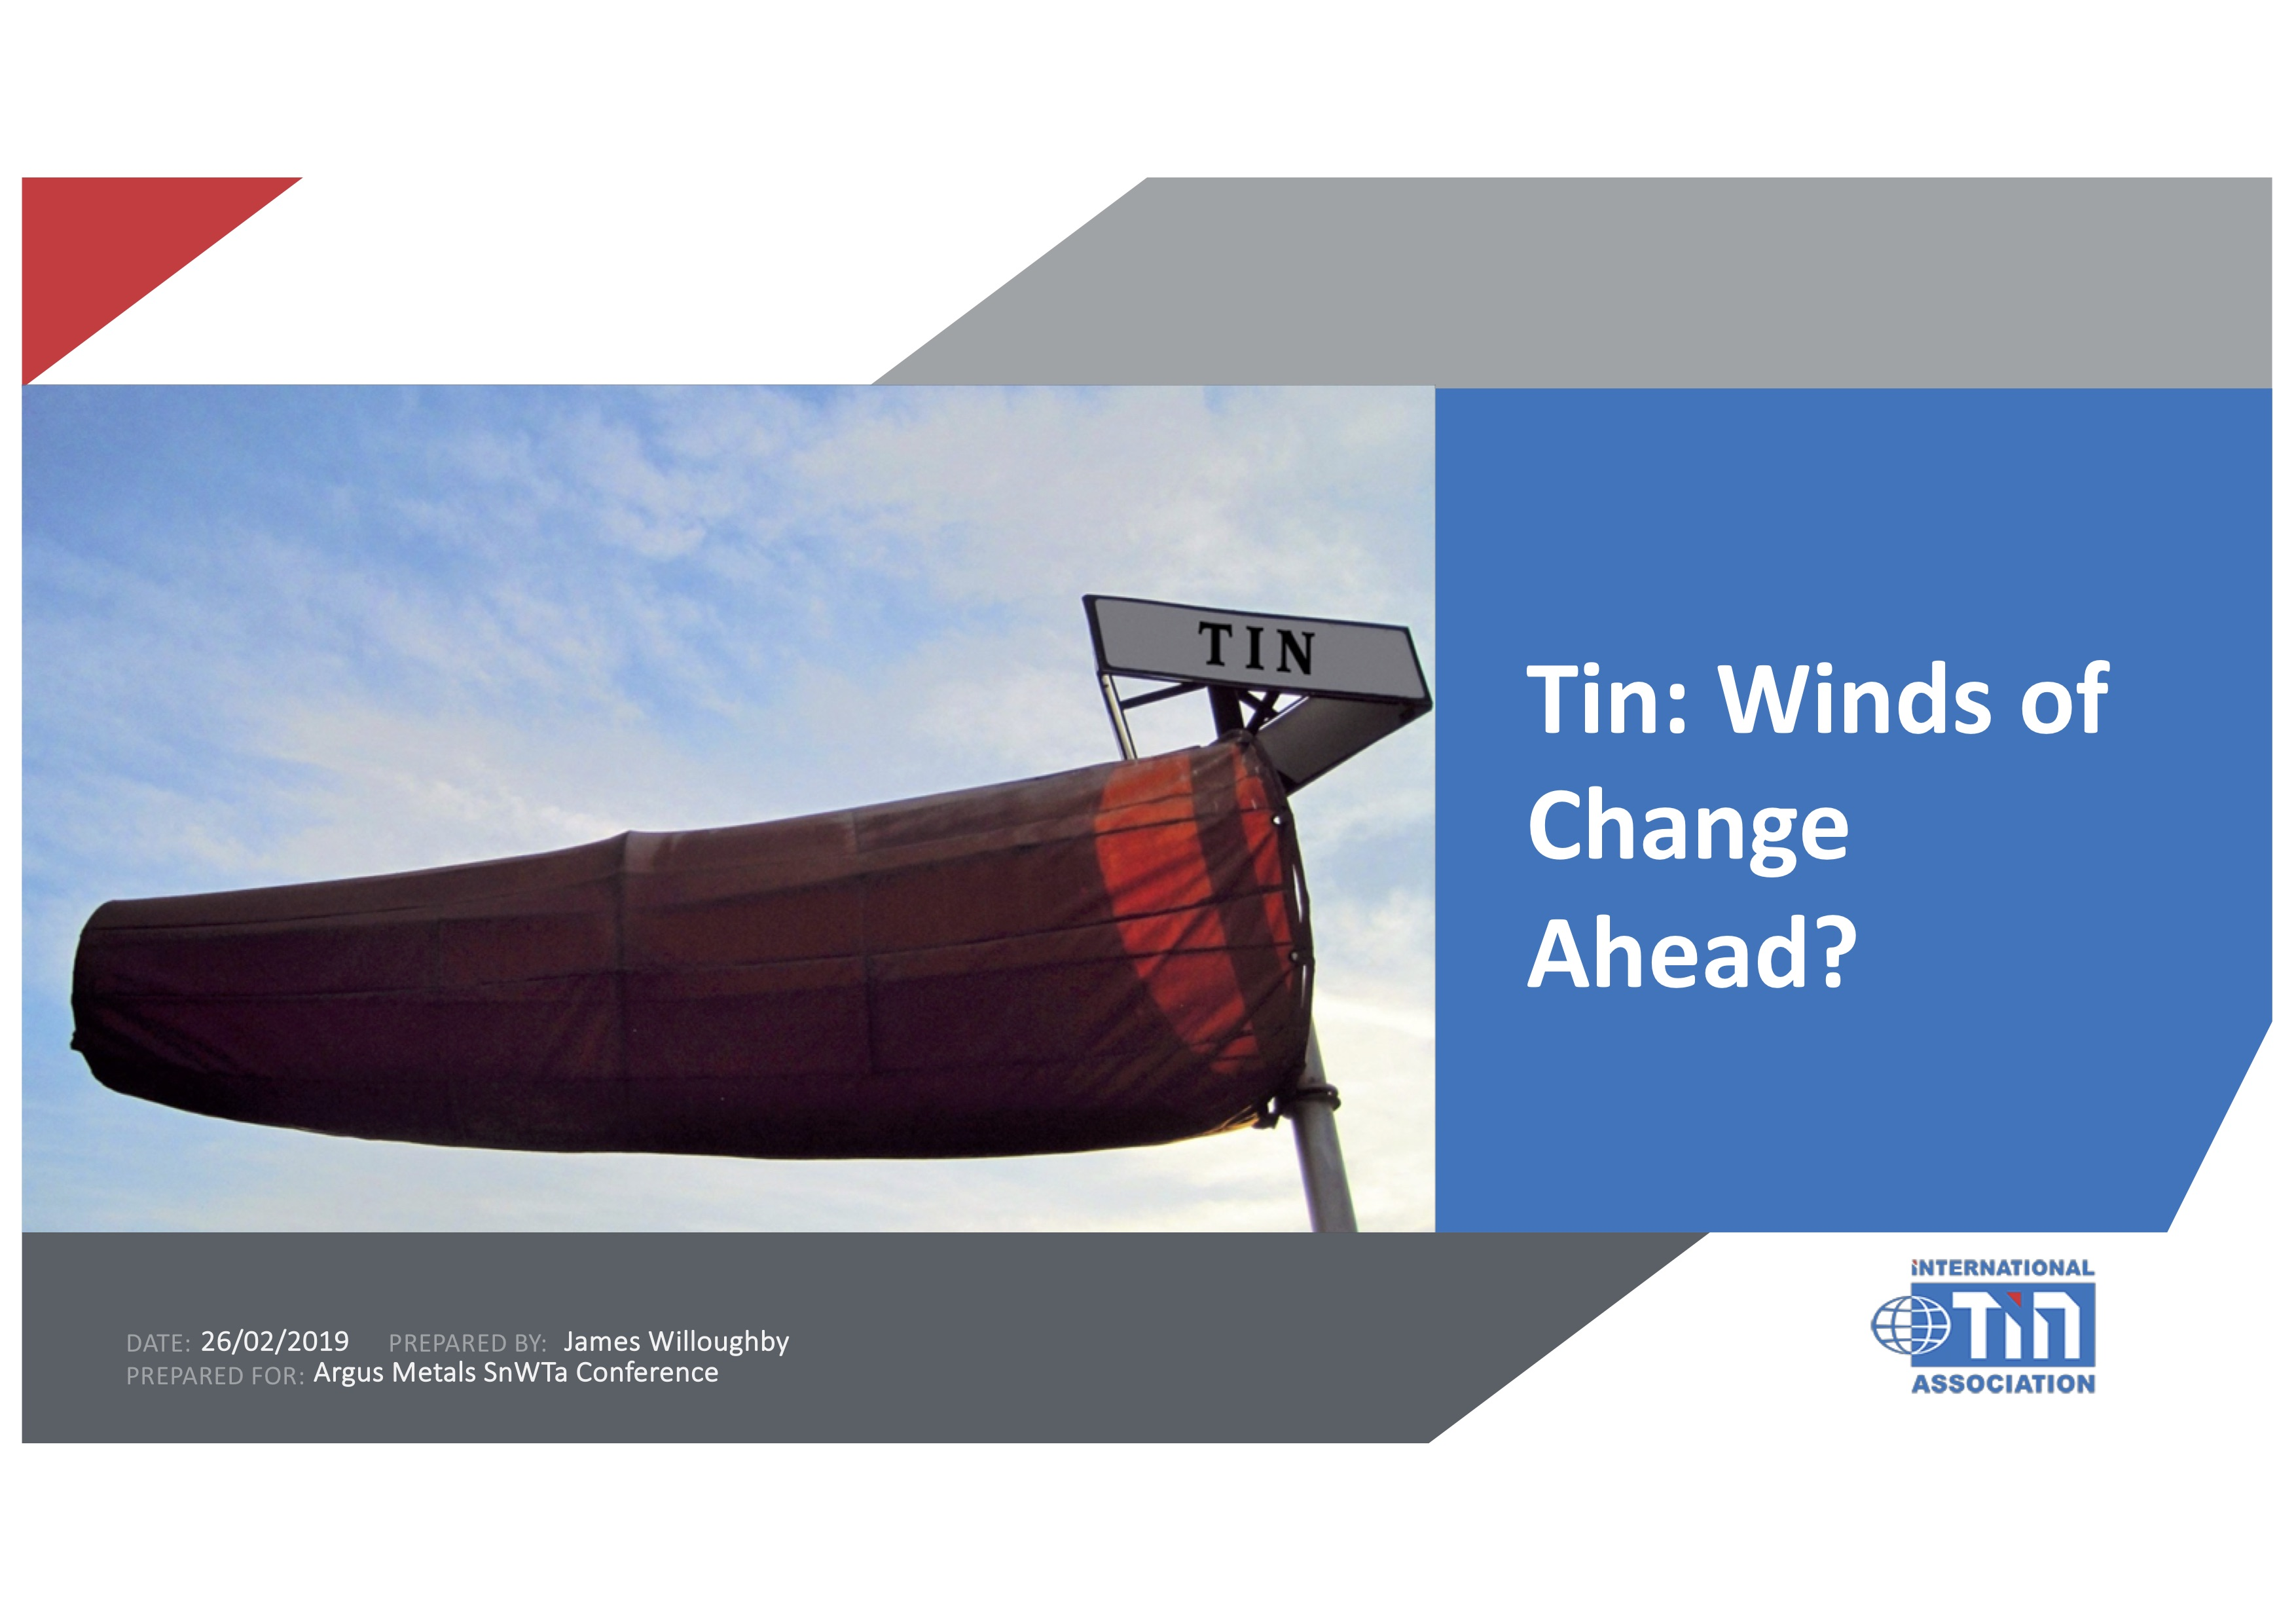 ITA:Tin - Winds of Change Ahead?